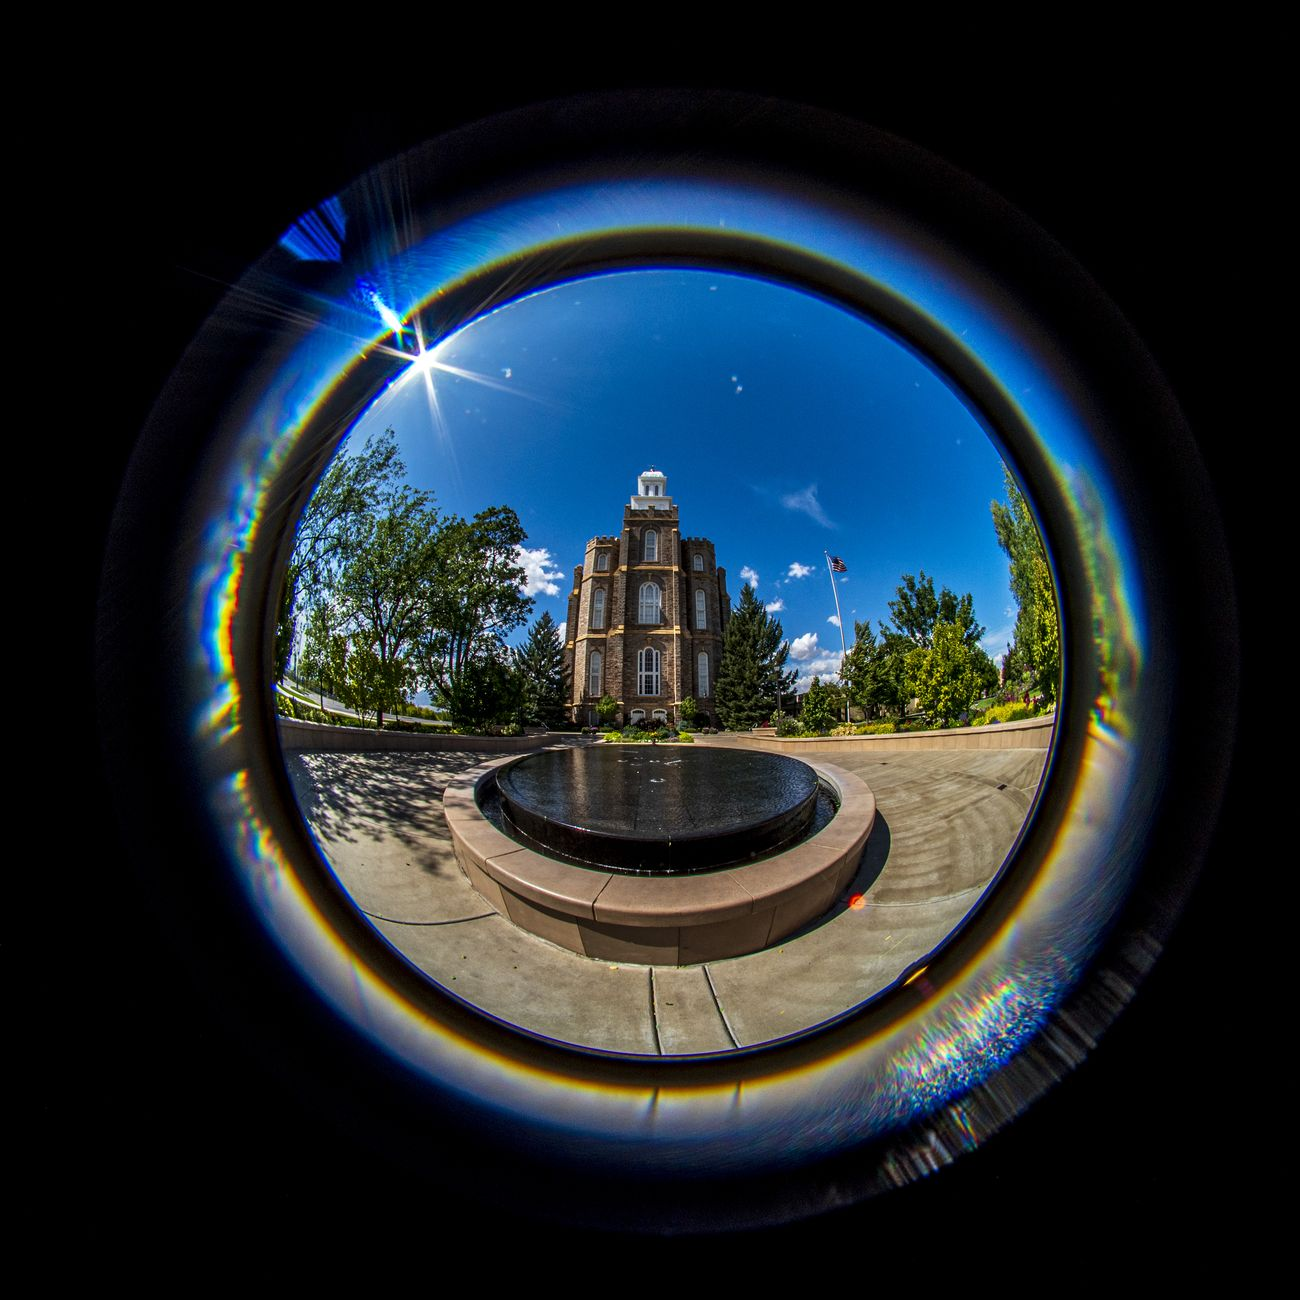 Logan Utah Temple Lensbaby 5.8mm fisheye